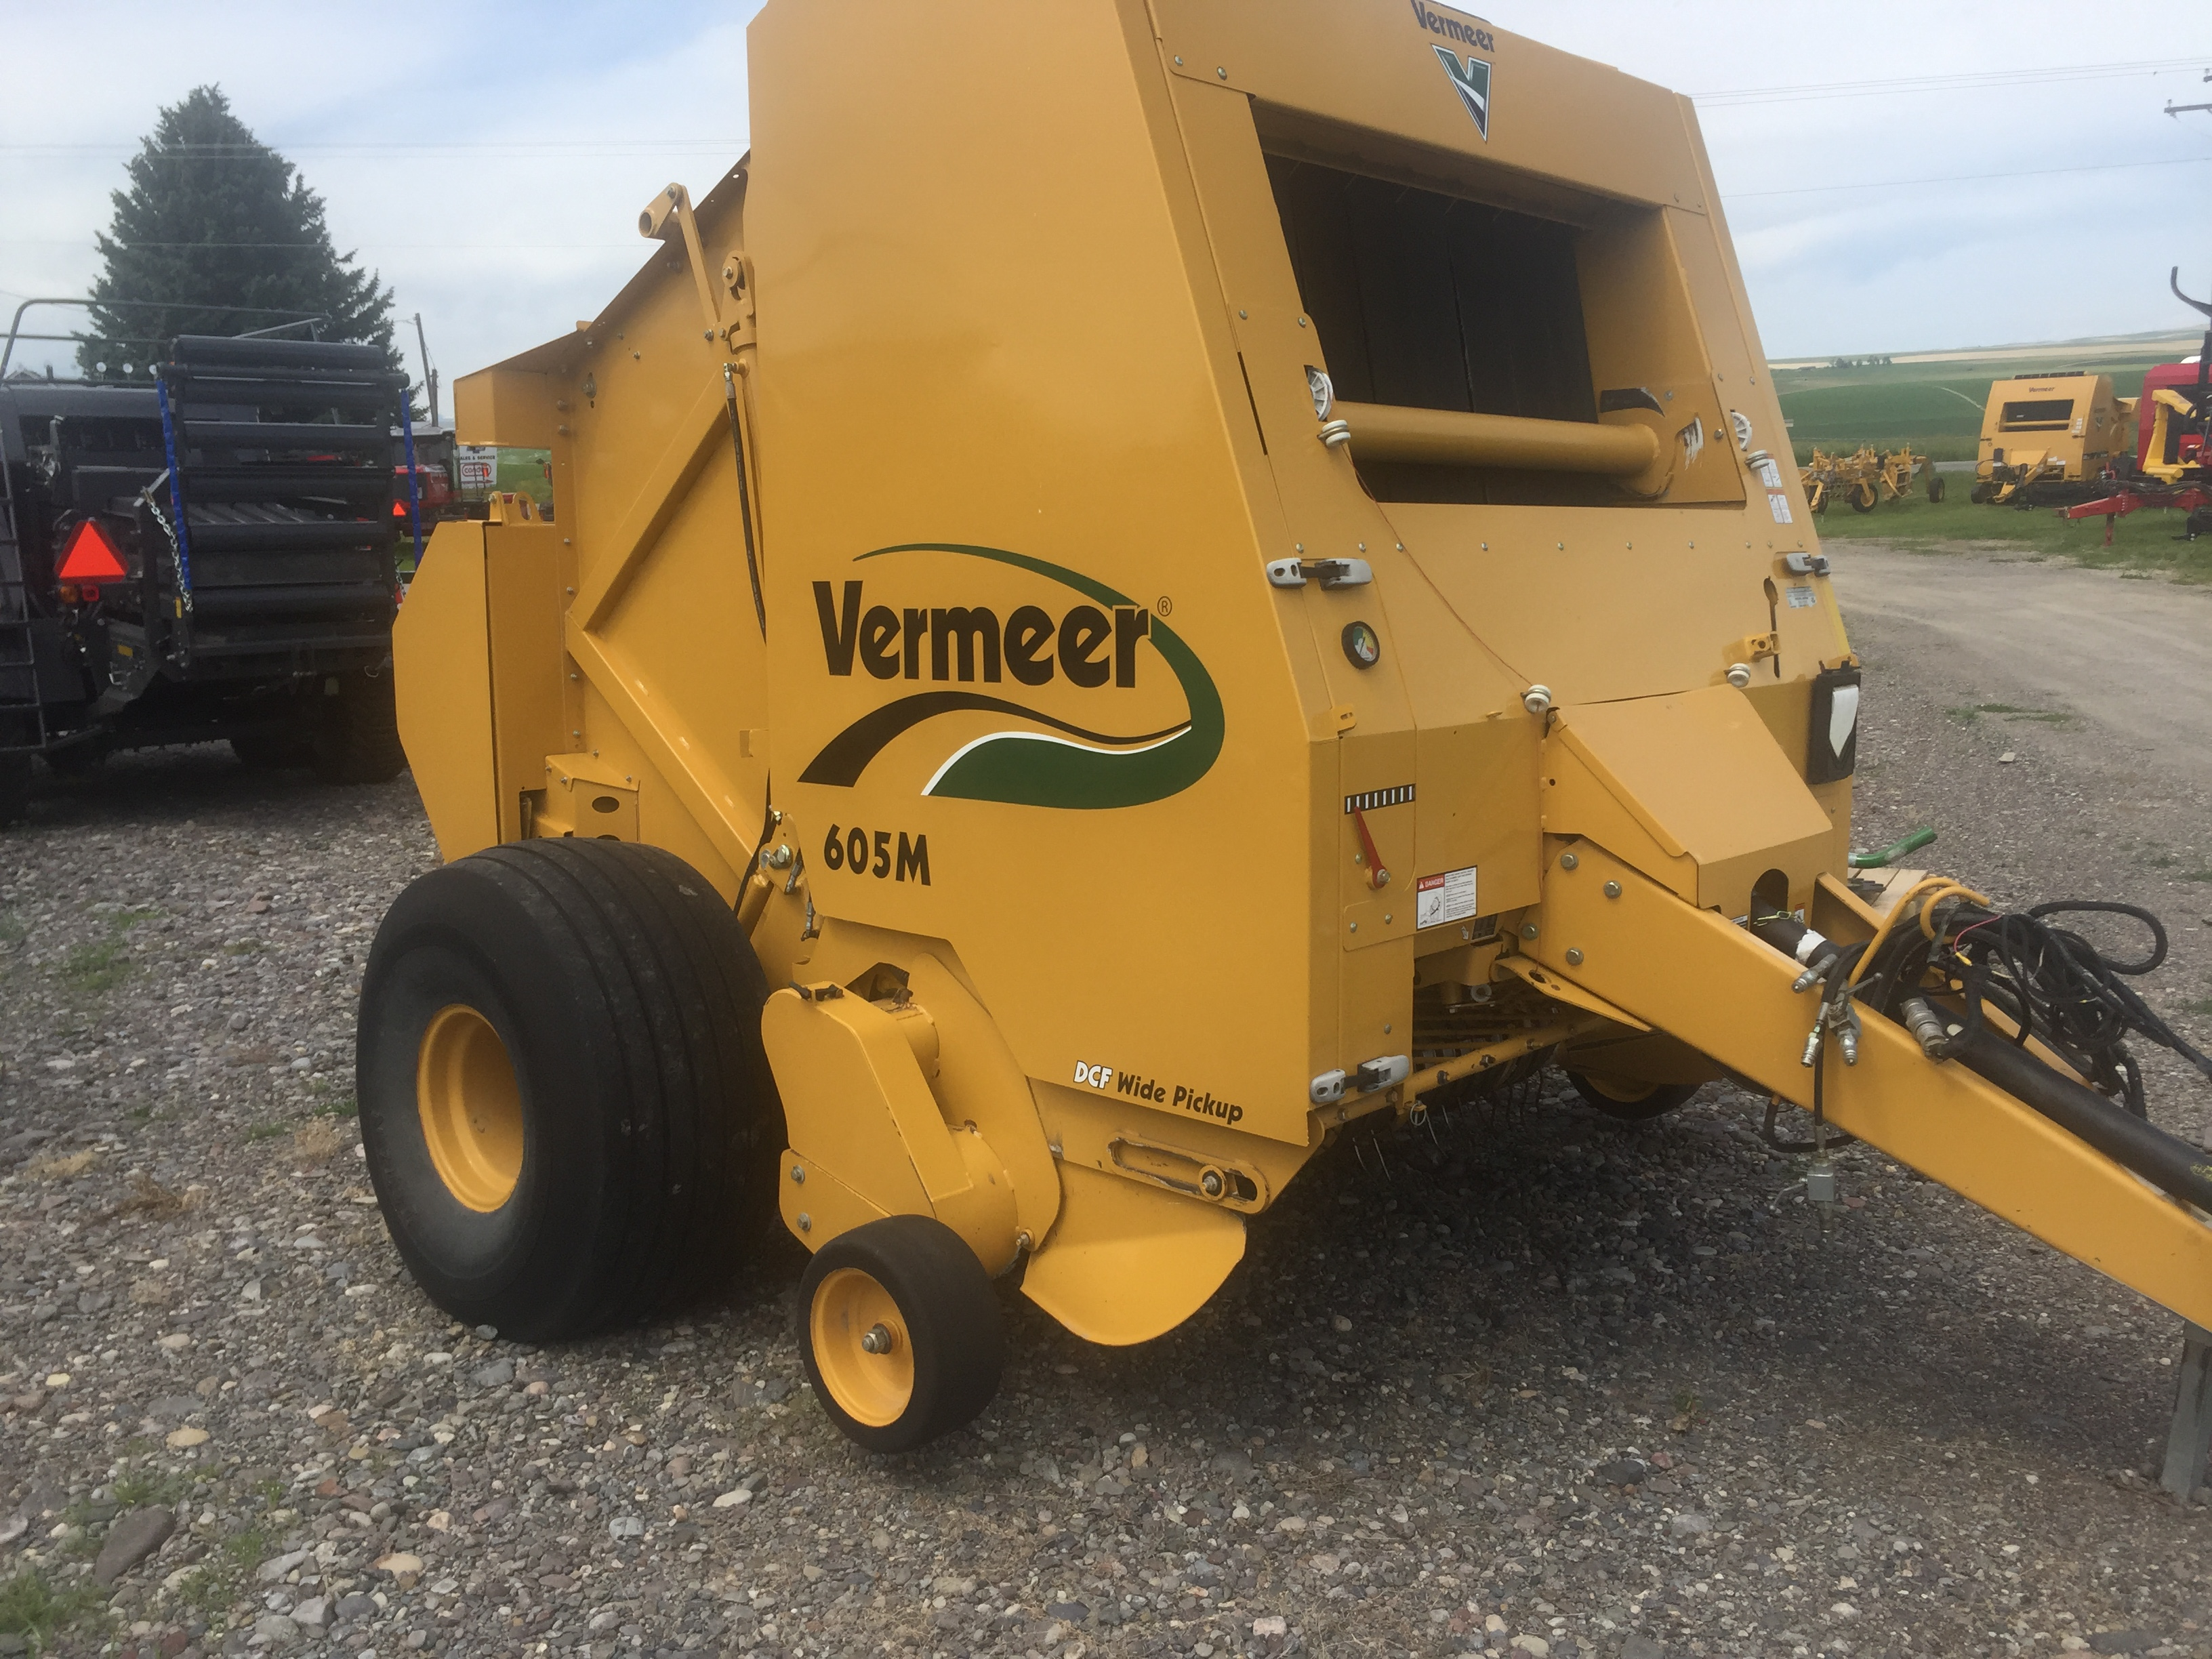 2008 Vermeer 605M Baler/Round for sale in Manhattan, MT | IronSearch